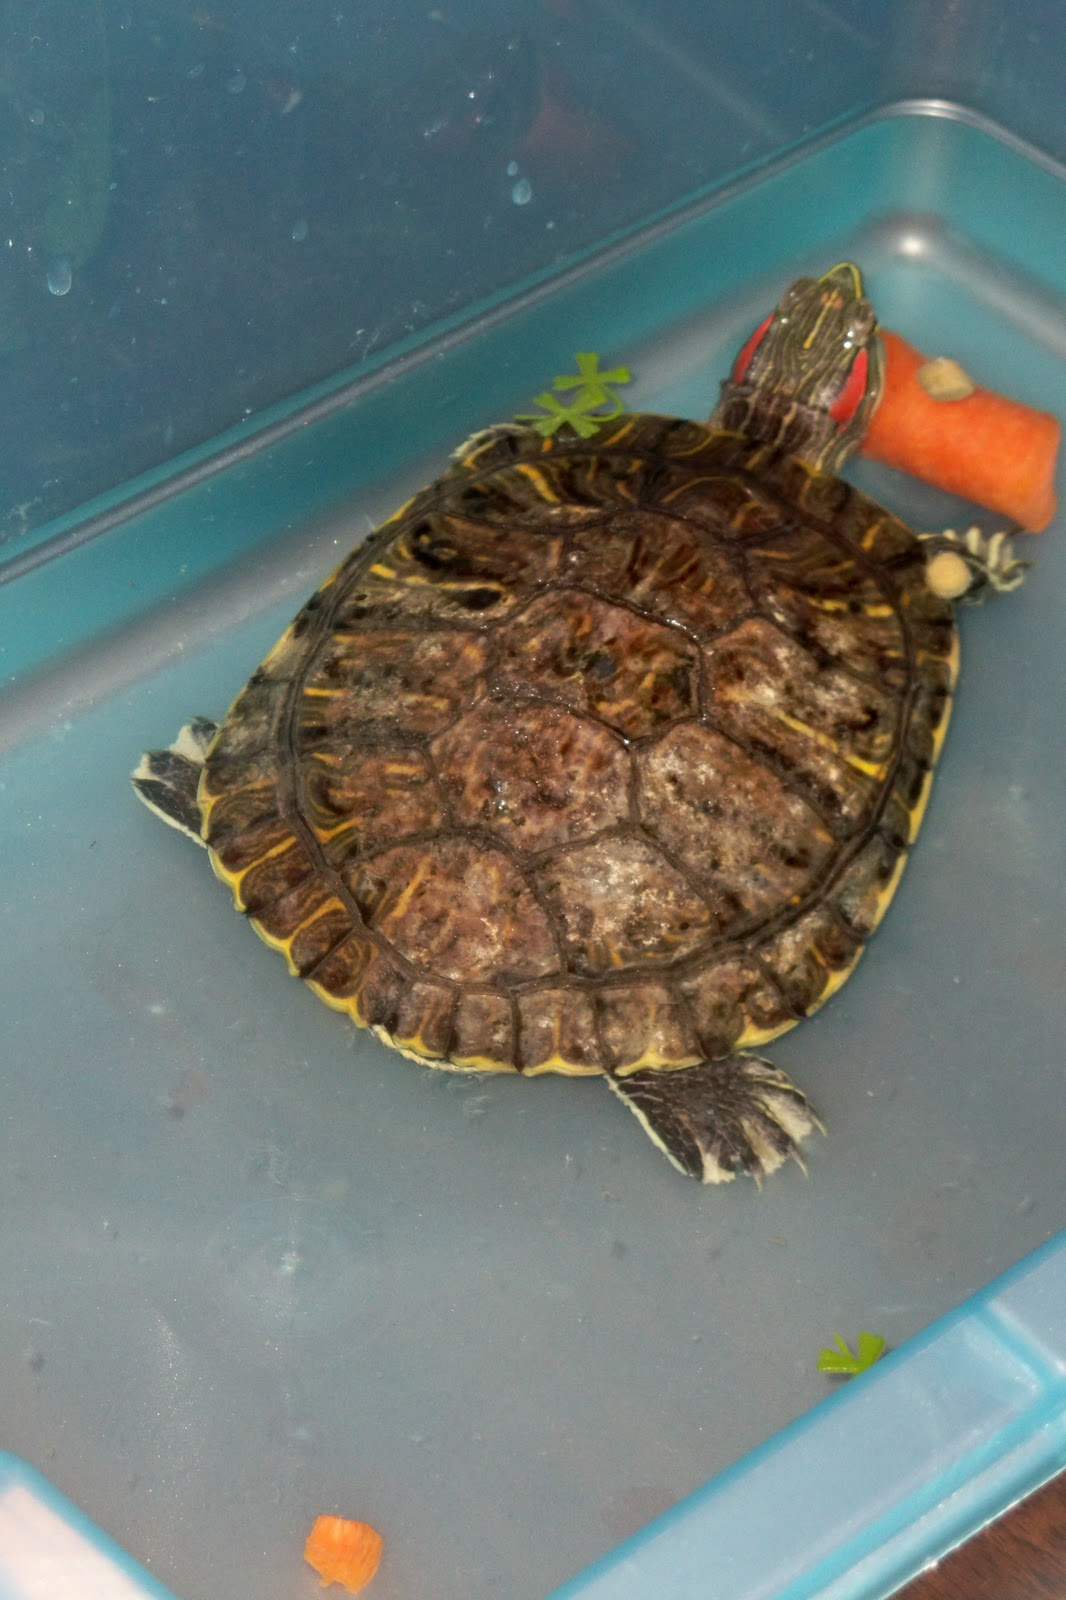 living sola gratia did i mention we got a turtle